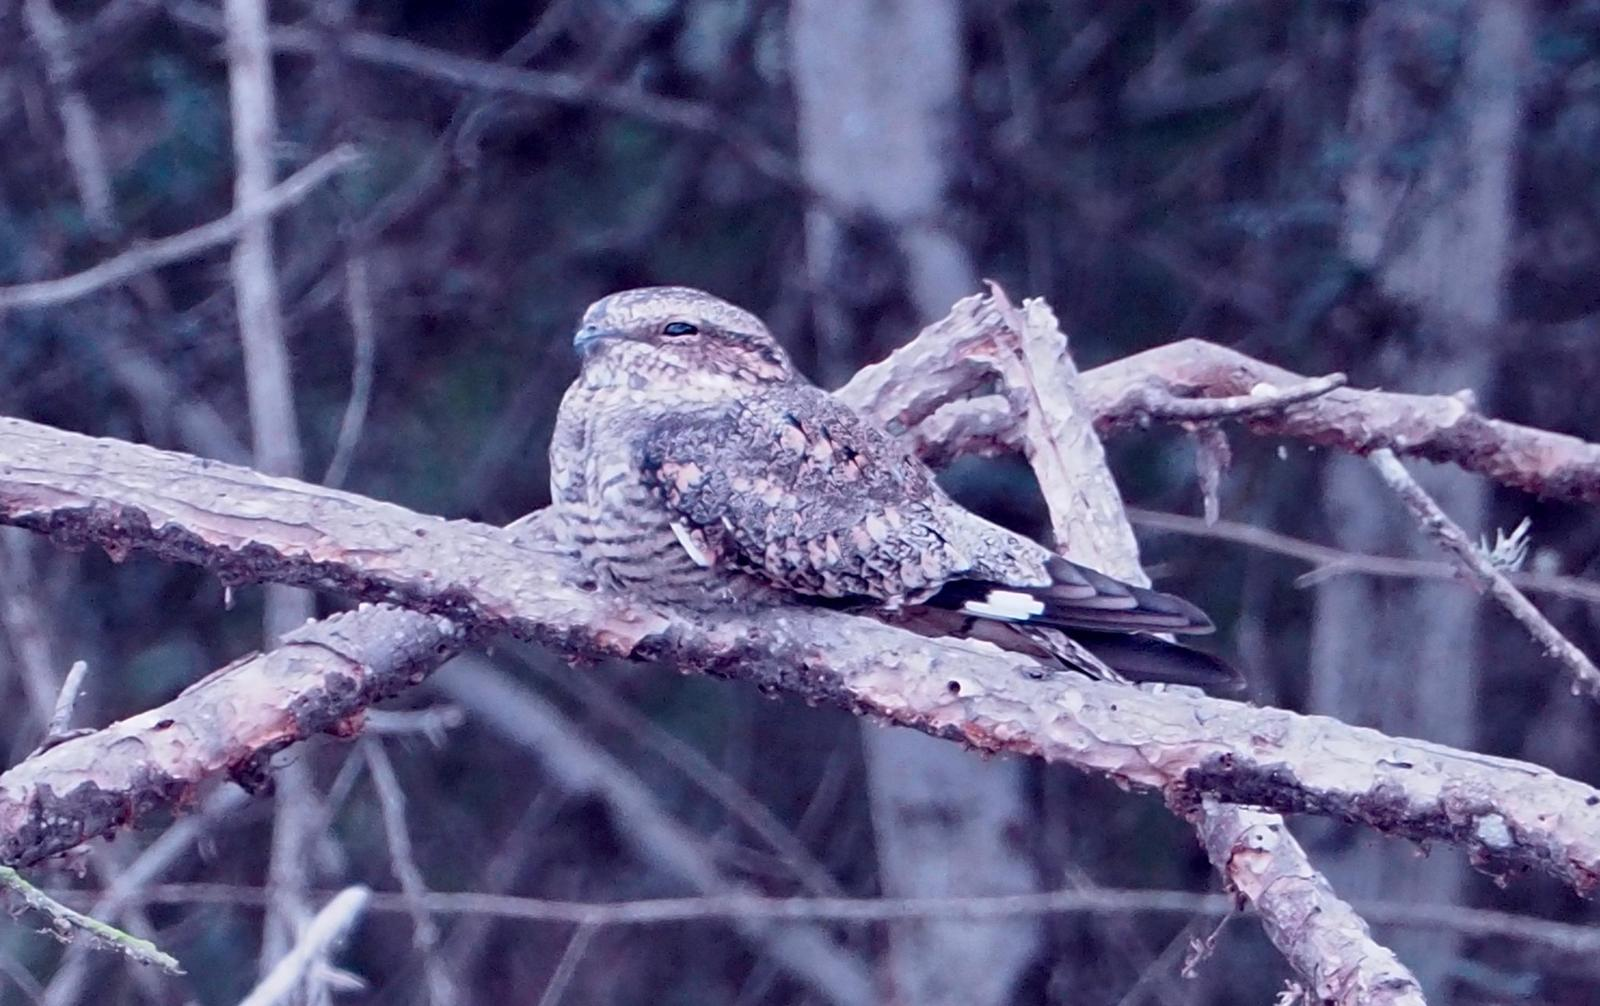 Tschudi's Nightjar Photo by Geraint Langford